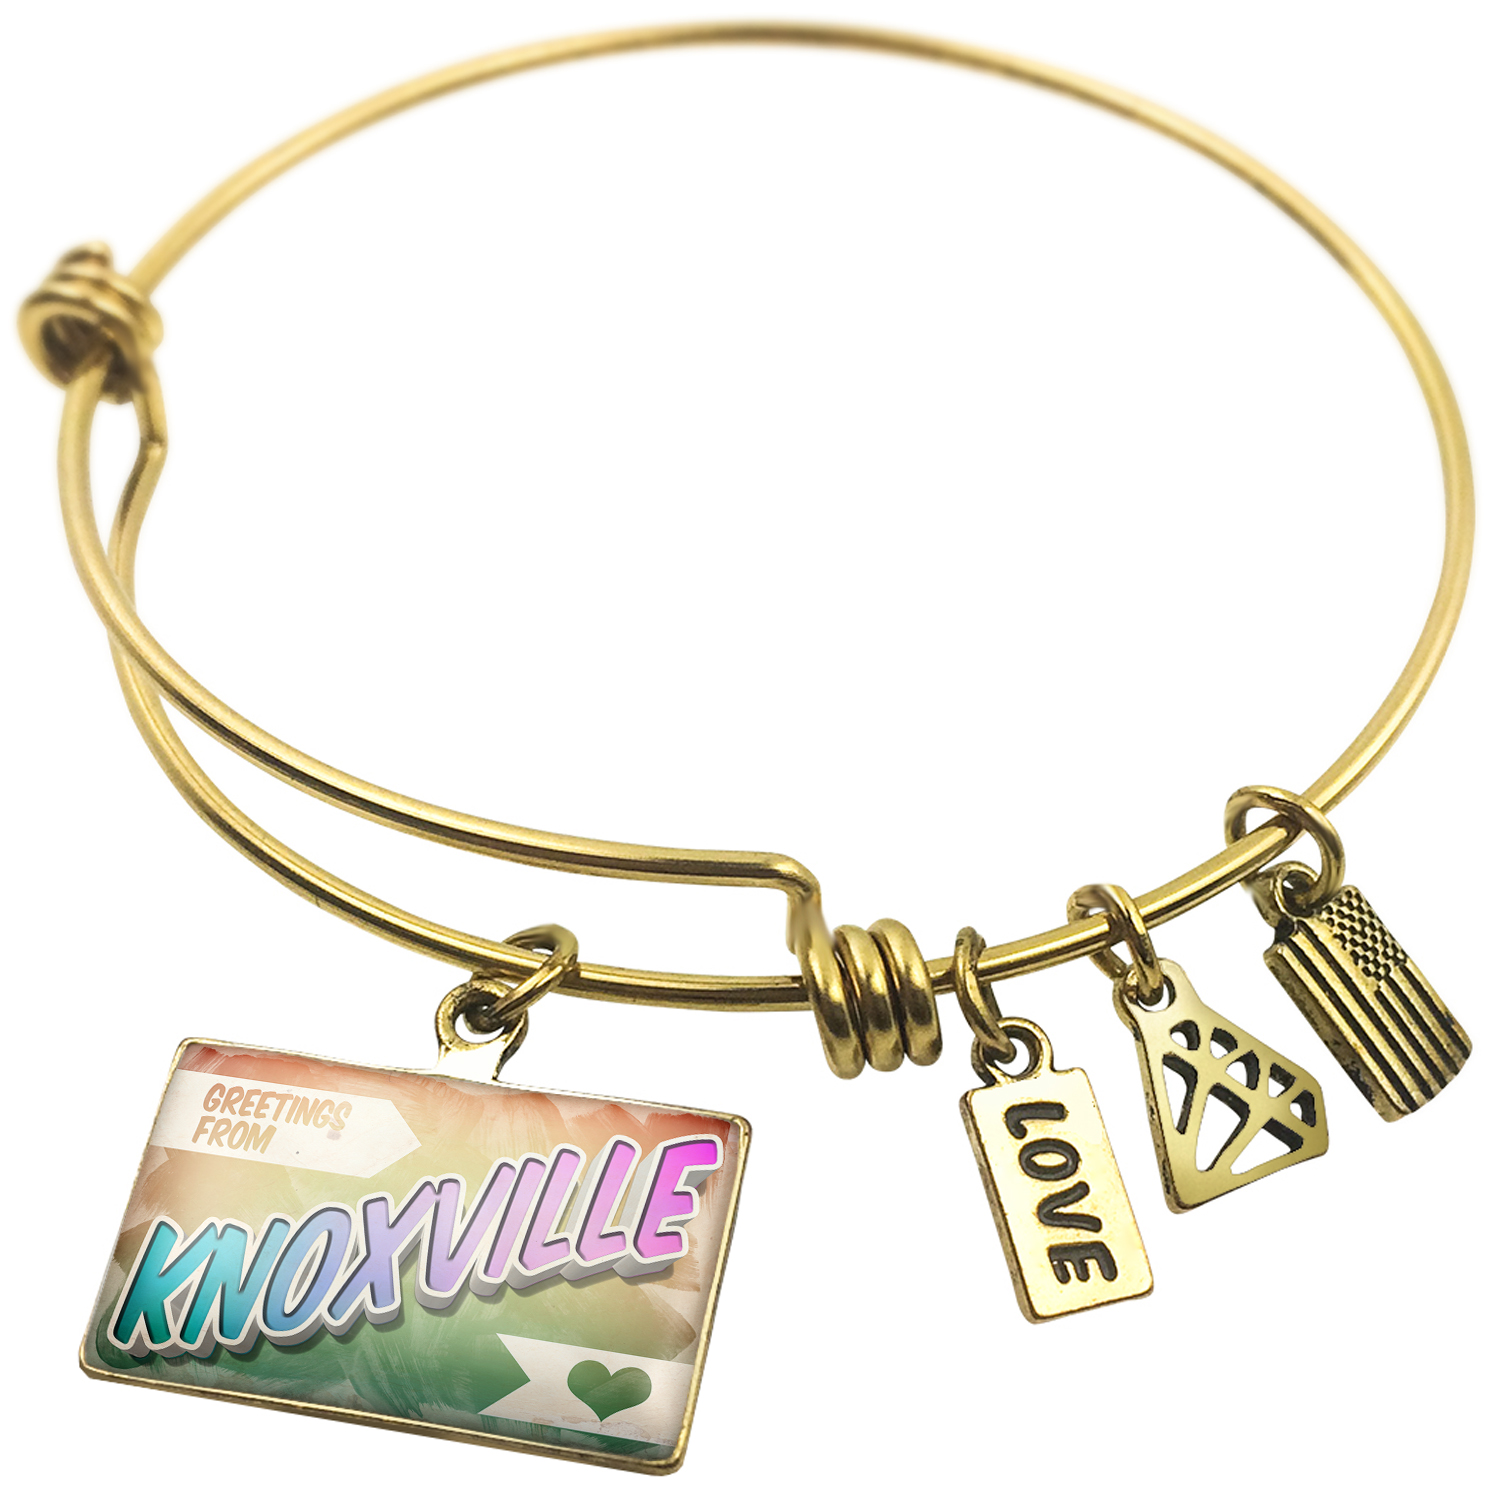 Expandable Wire Bangle Bracelet Greetings from Knoxville, Vintage Postcard - NEONBLOND